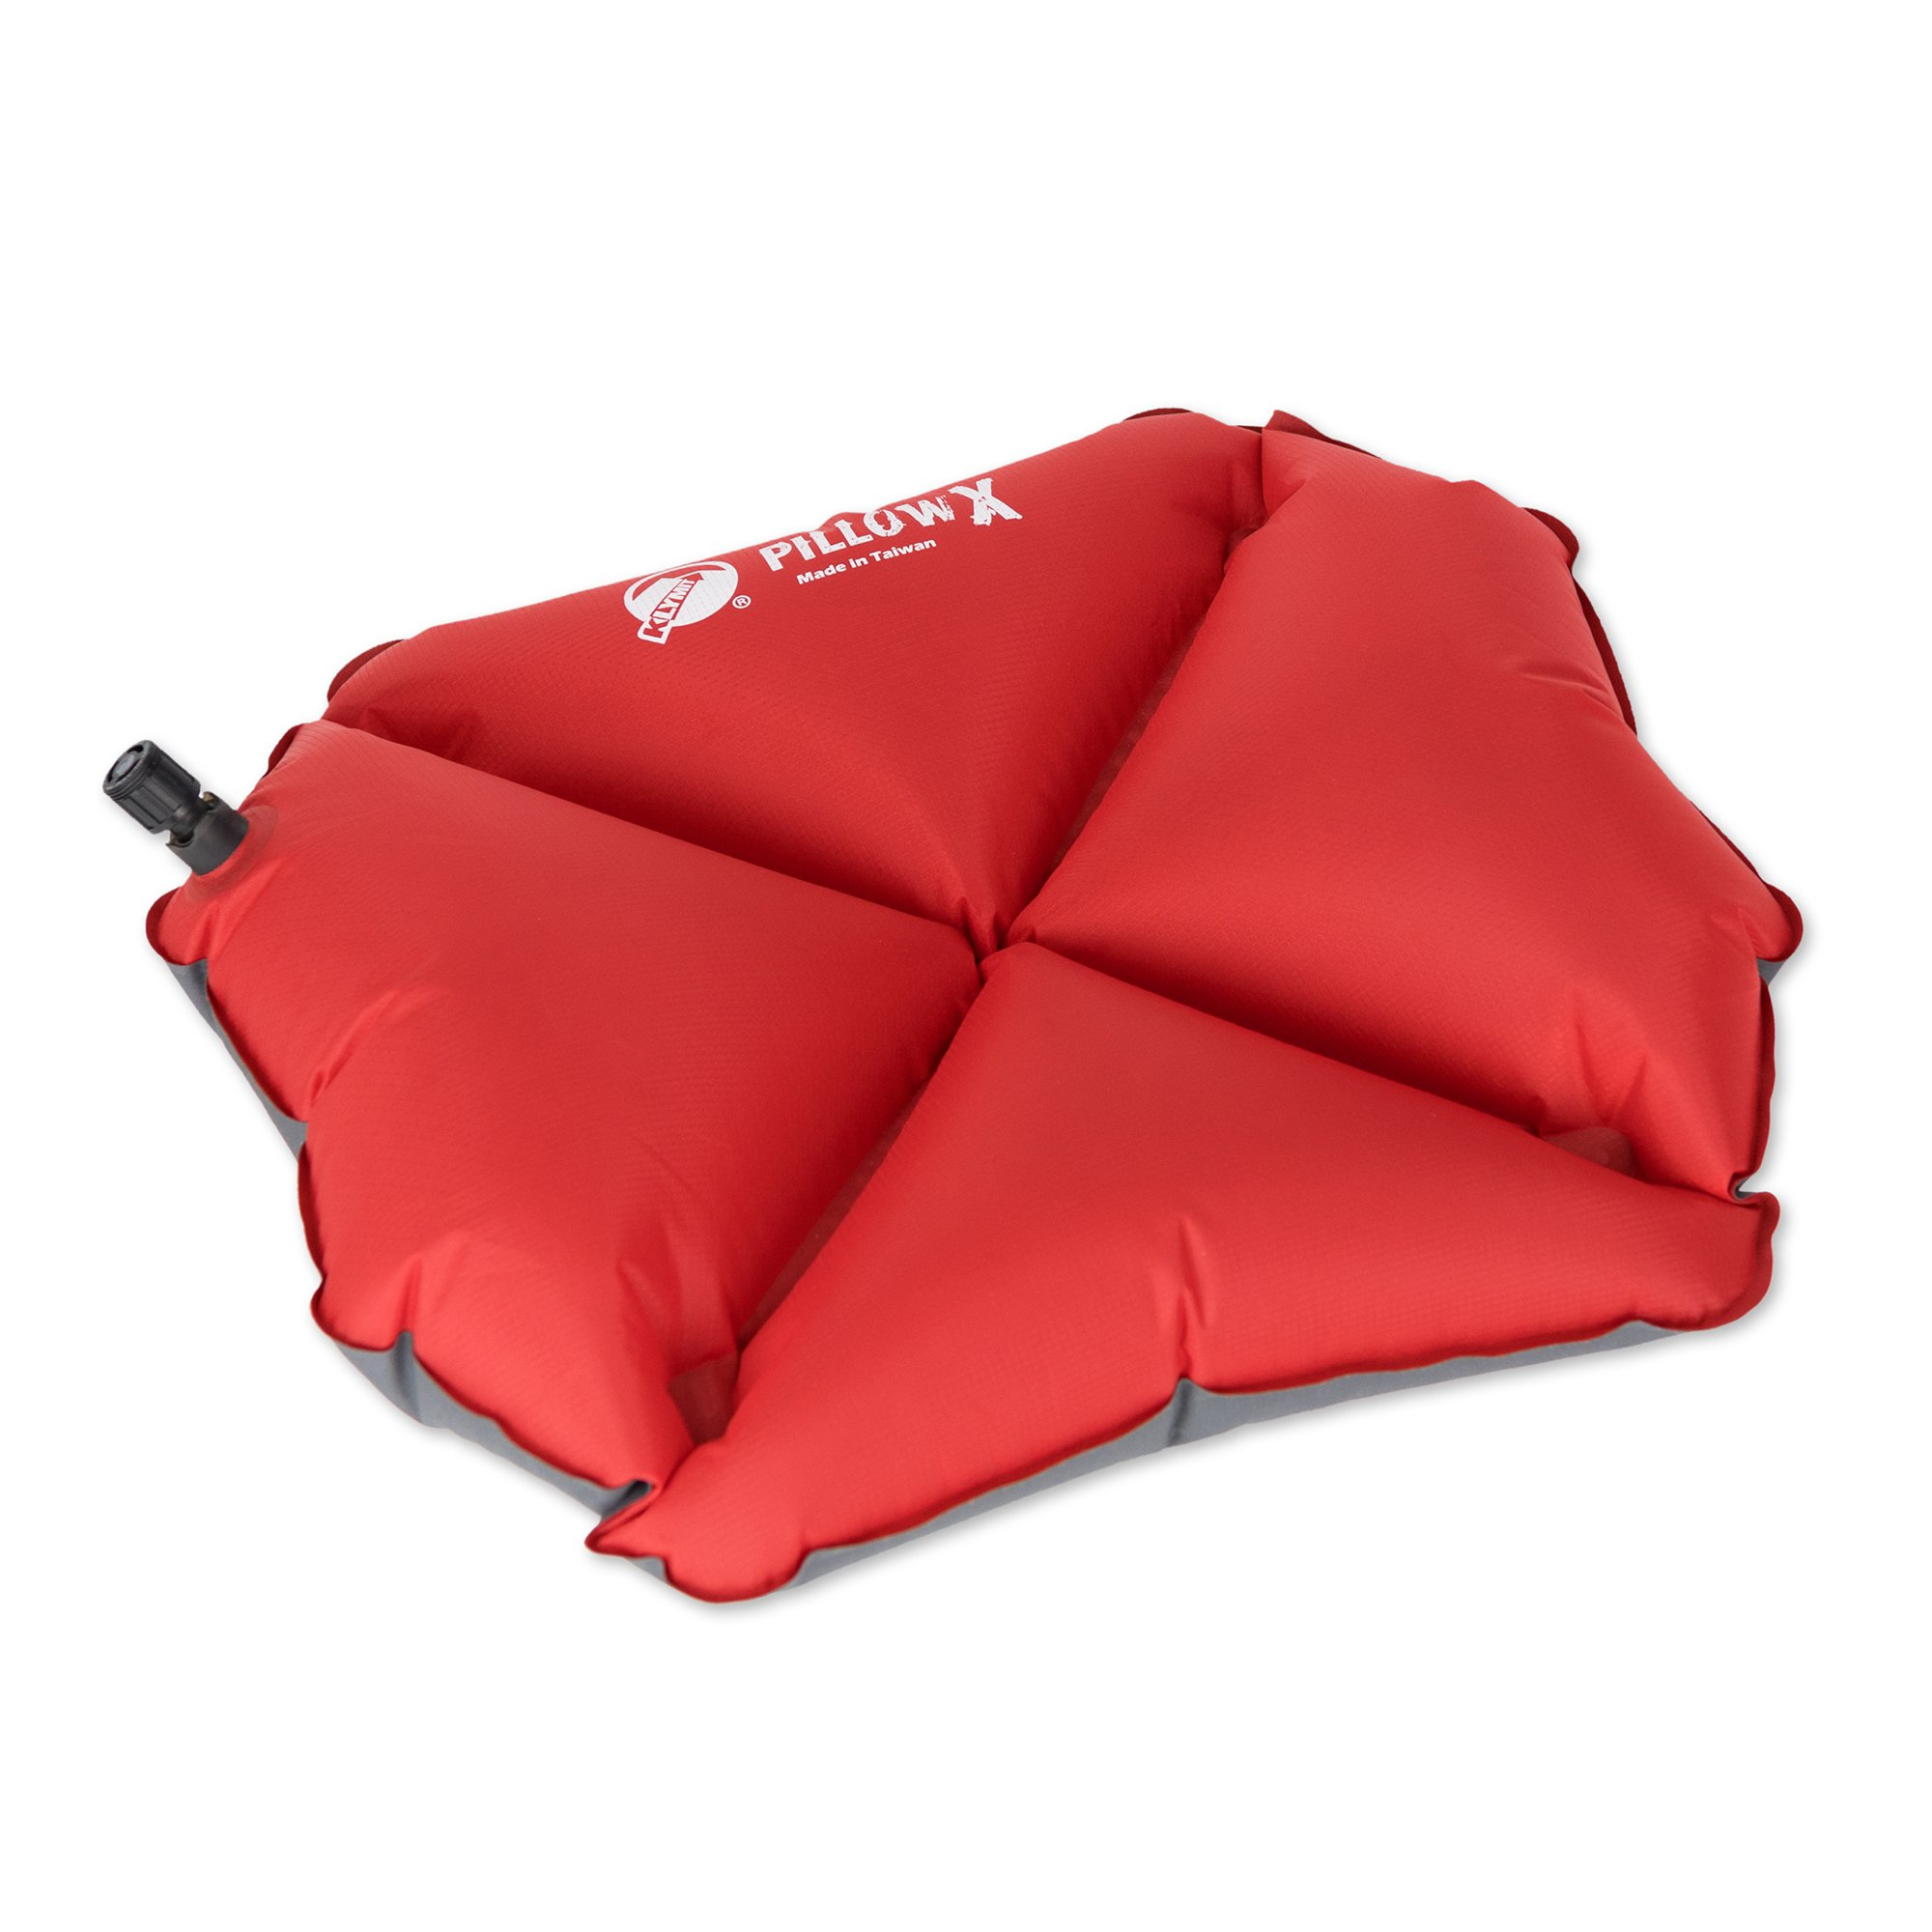 Klymit Pillow X Soft Ultralight Inflatable Travel Camping Pillow, Red (10 Pack) - image 3 de 6